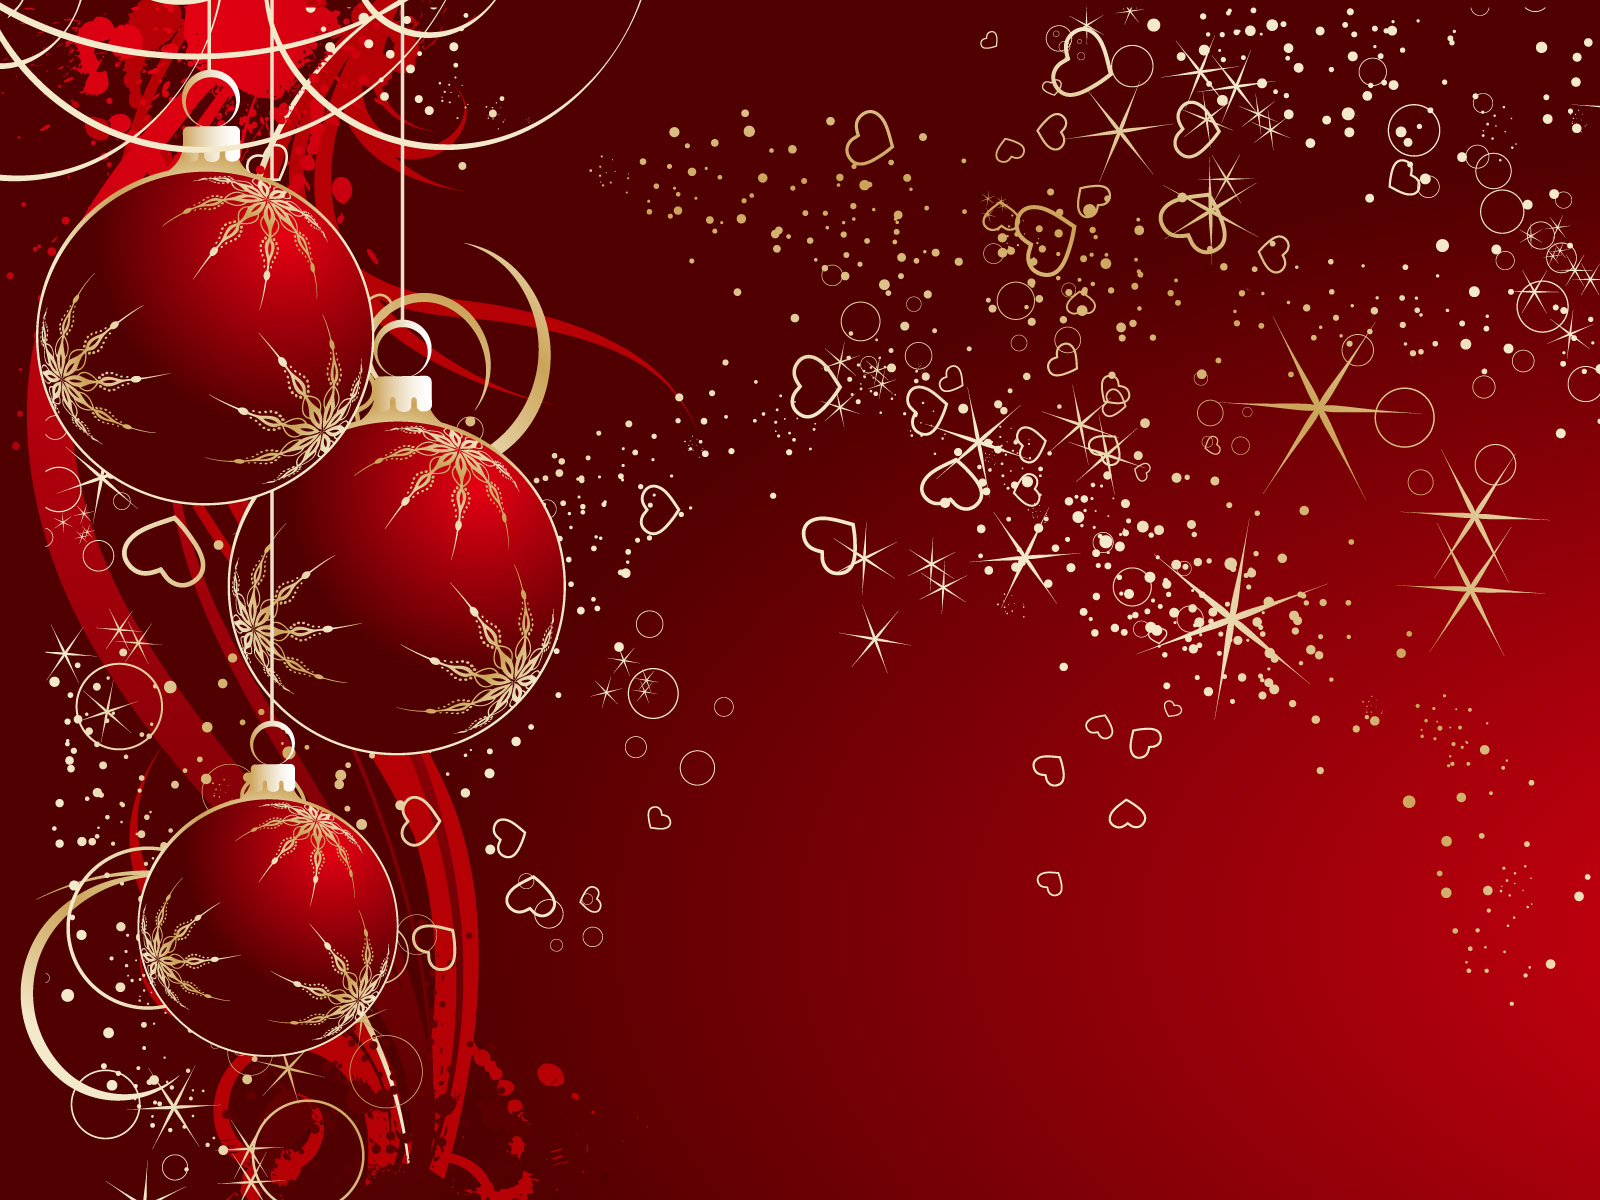 Christmas Computer Wallpaper Backgrounds Group (76+)